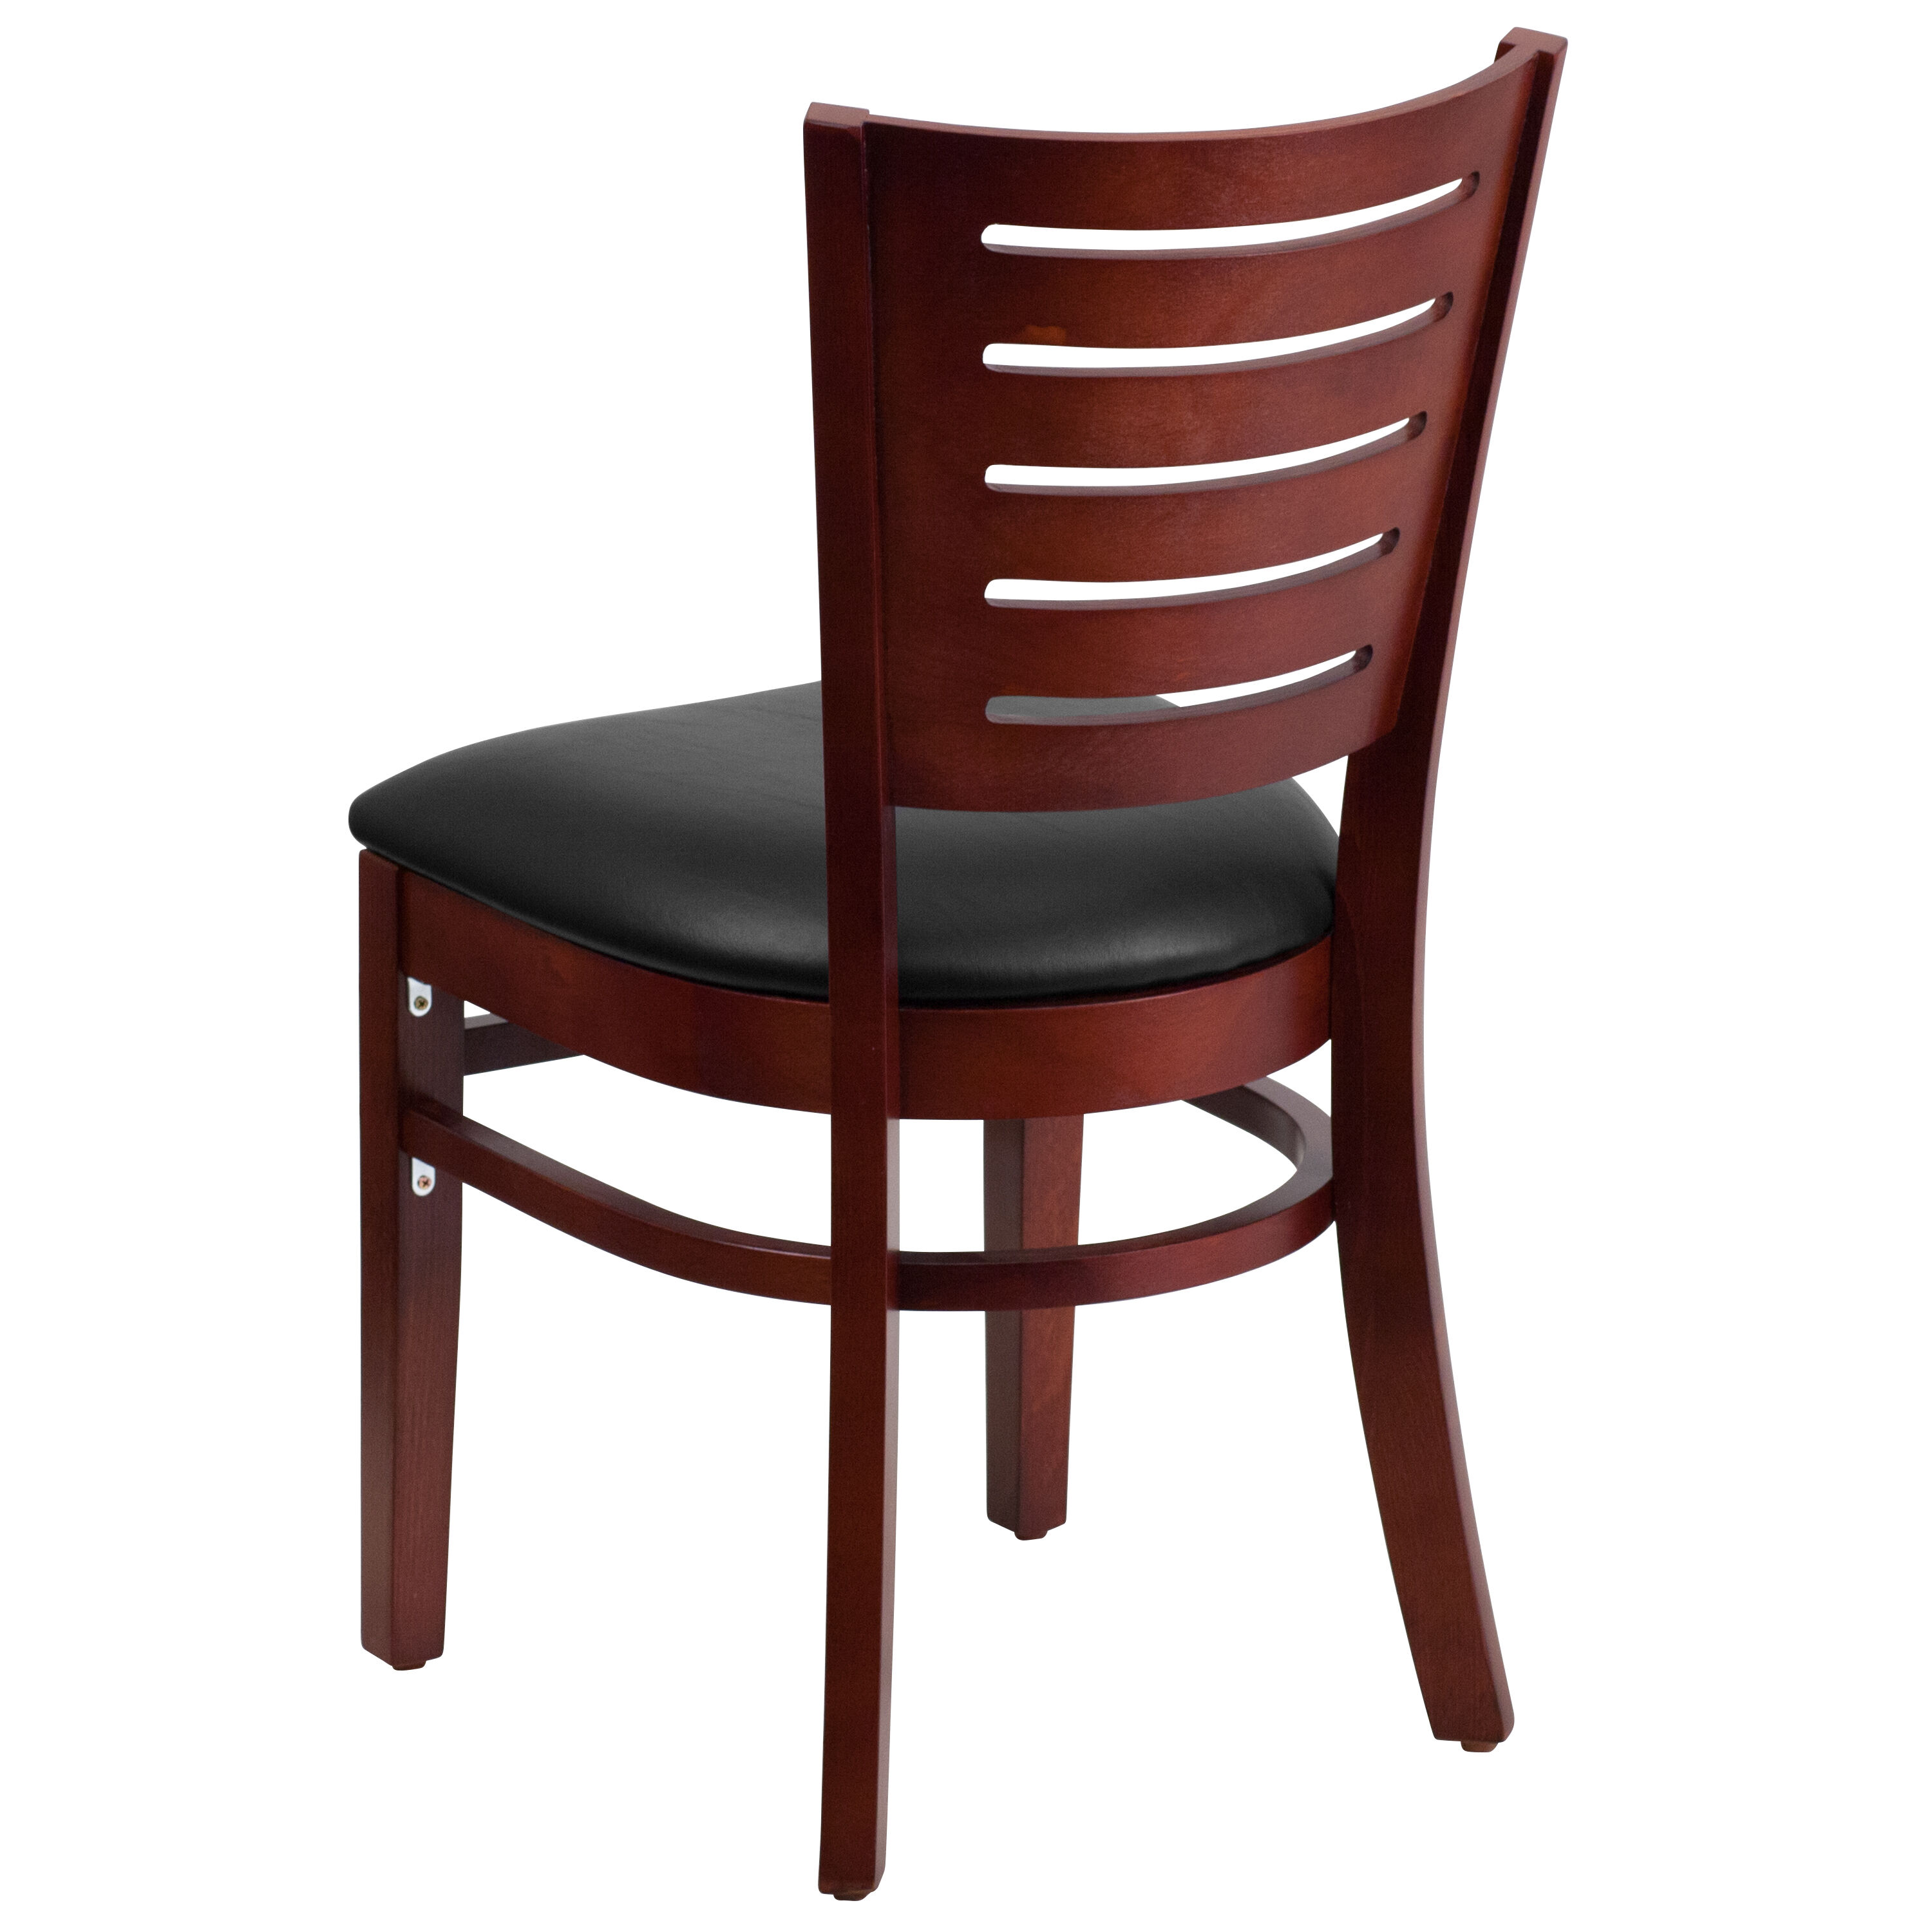 wooden slat chairs navy blue accent wood back chair bfdh dg w0108 bizchair